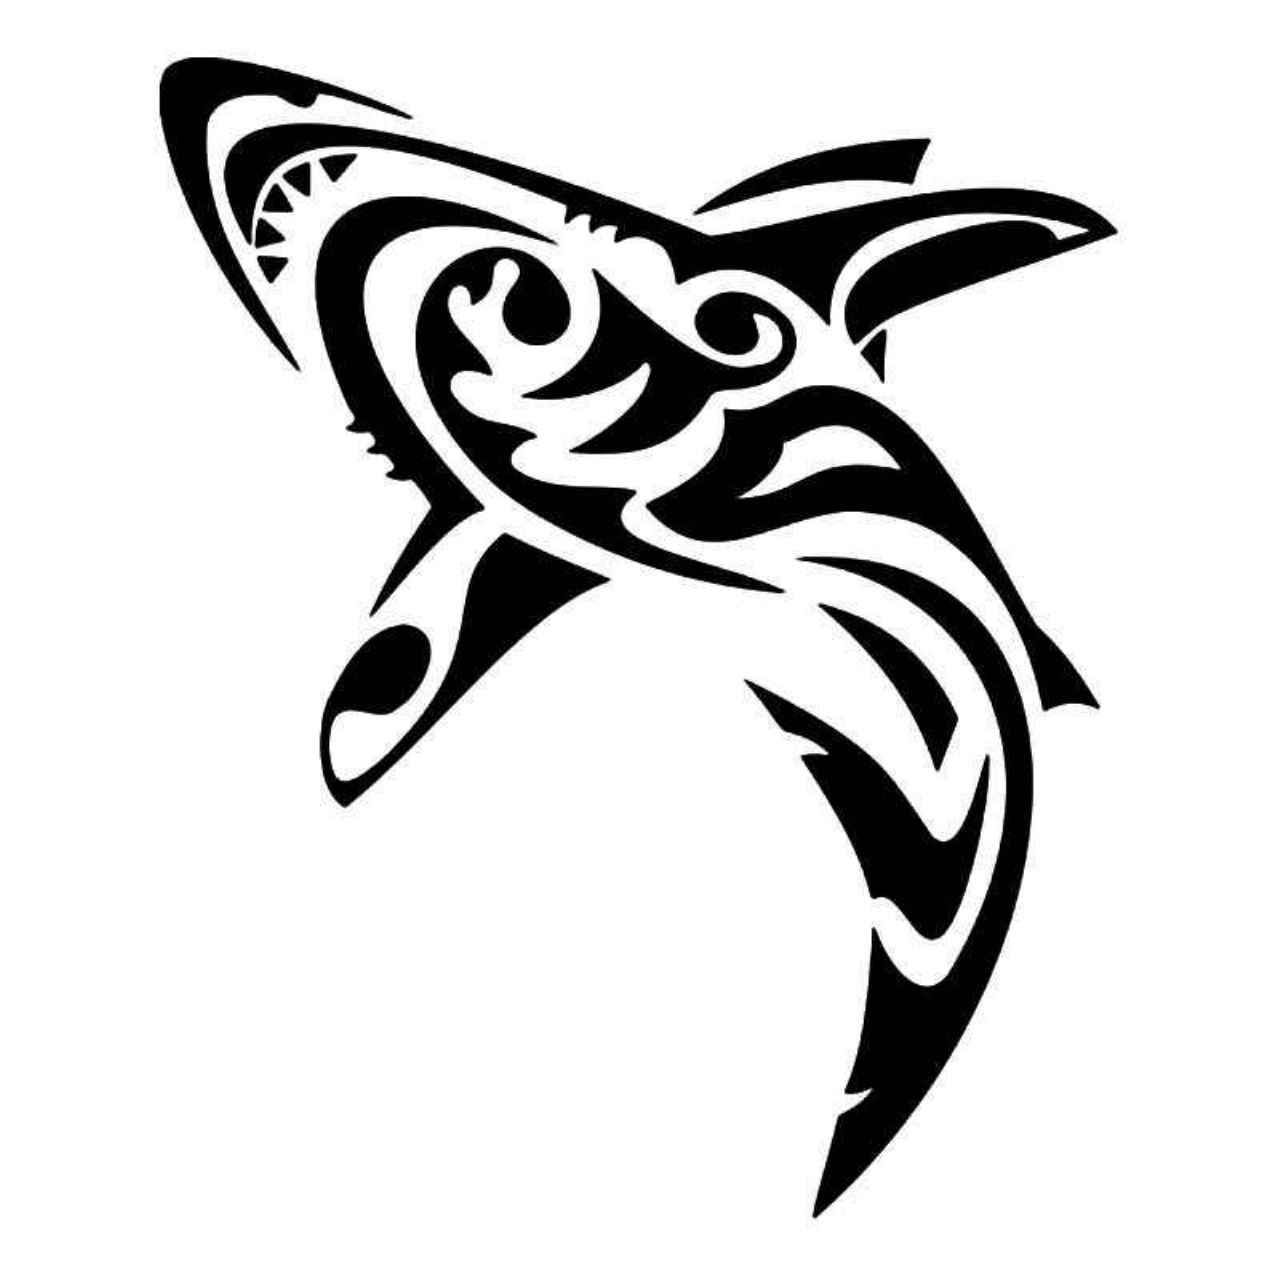 834f353dd Tribal Shark Fish 5 Vinyl Decal Sticker   Crafting to Cure The Soul ...